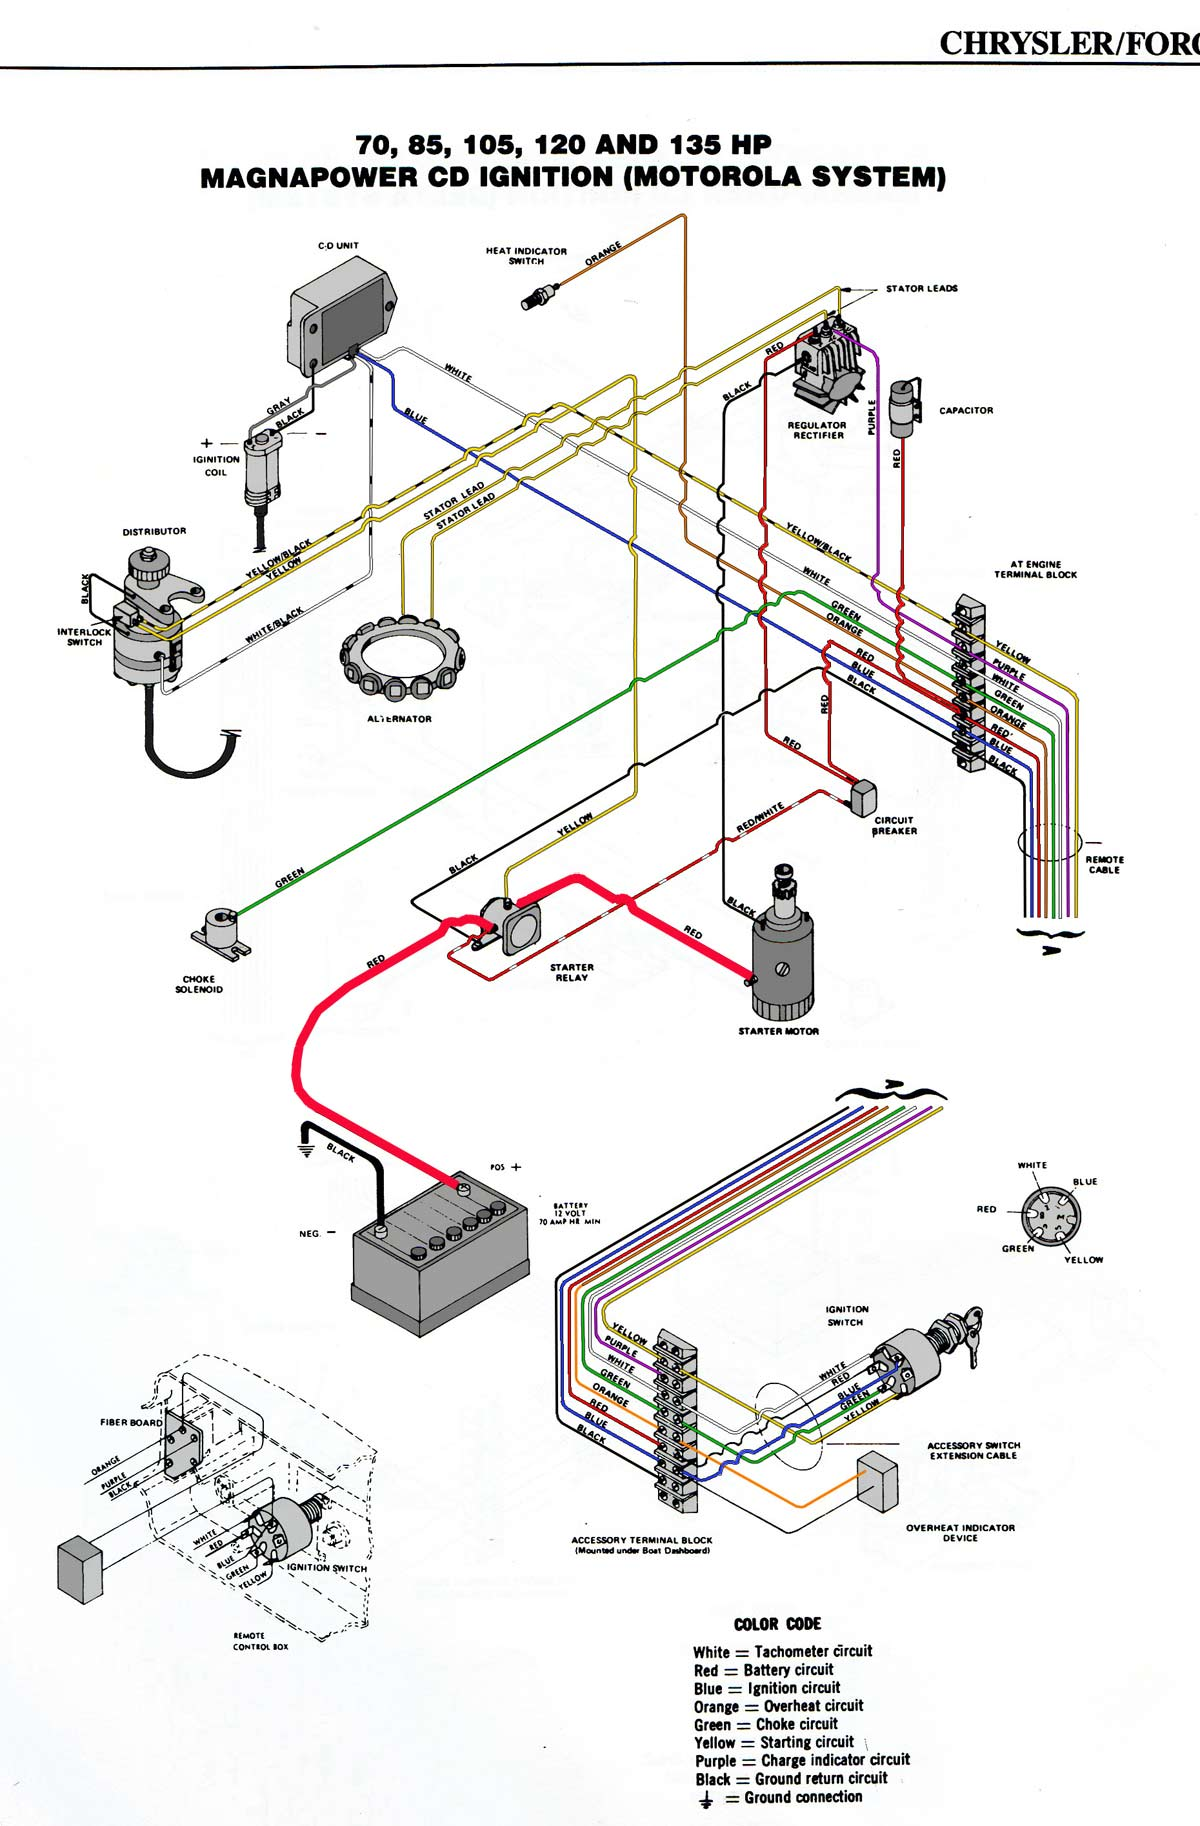 wiring_Chrysler_4cyl_Motorola mastertech marine chrysler & force outboard wiring diagrams  at alyssarenee.co